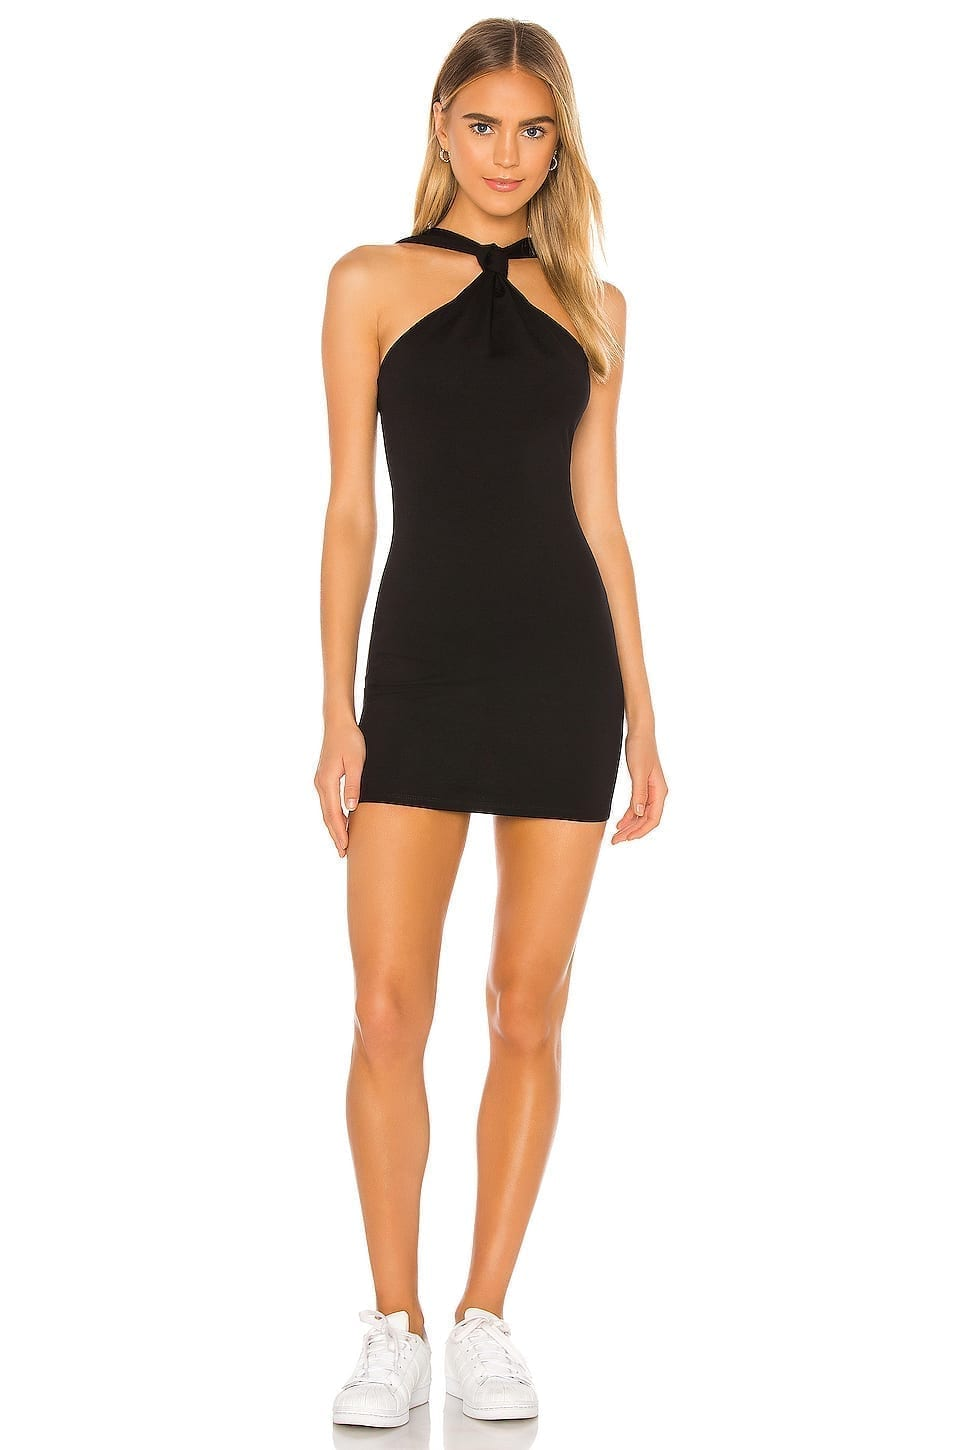 PRIVACY PLEASE Jessie Mini Dress